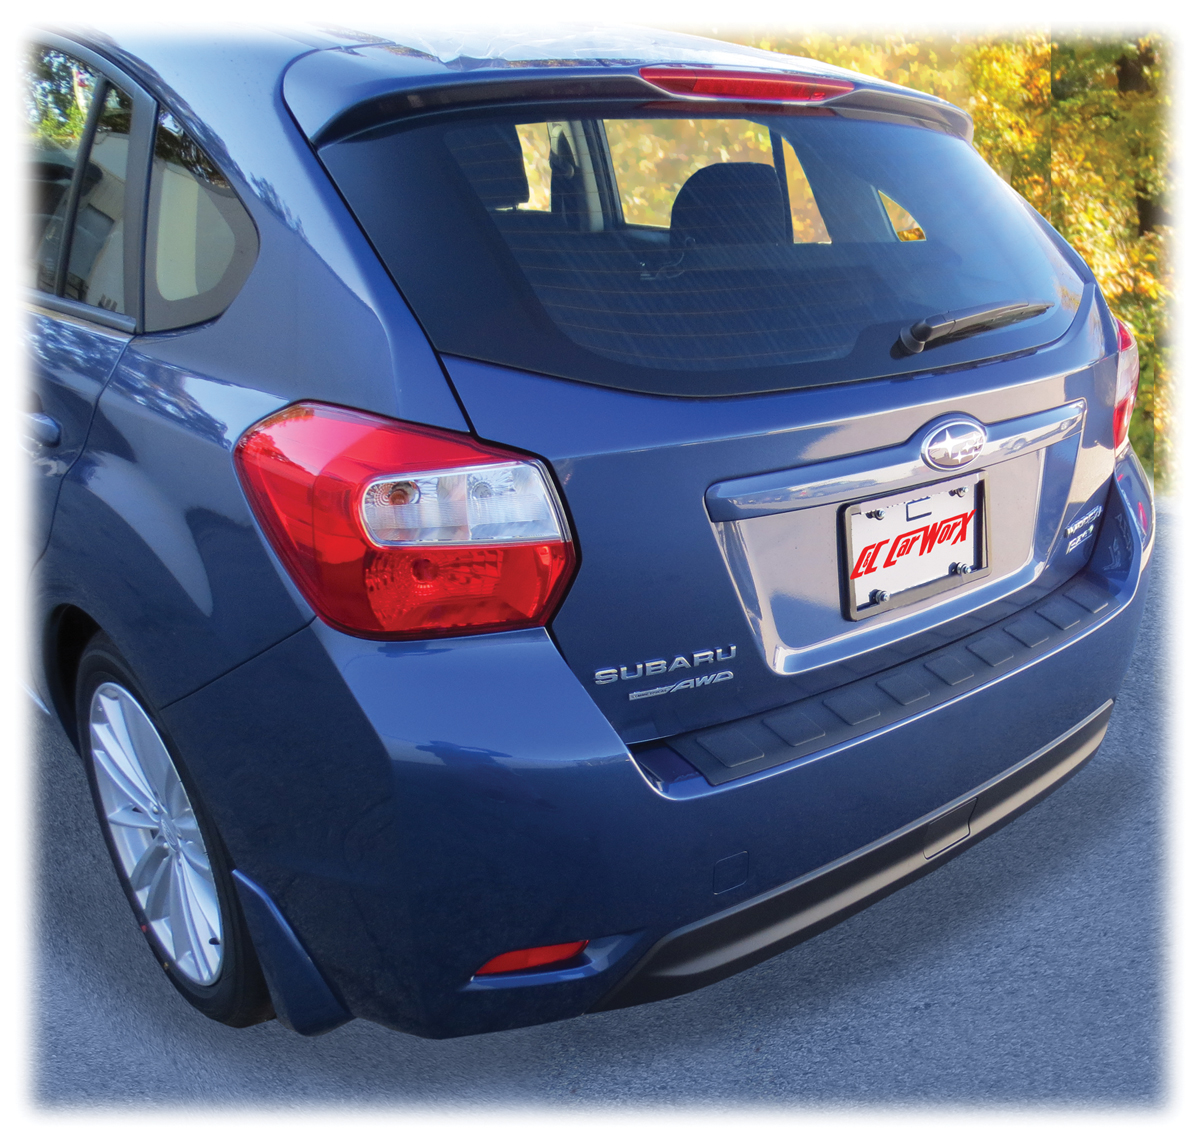 Subaru Rear Bumper Cover Guard Pad Protection For 2012